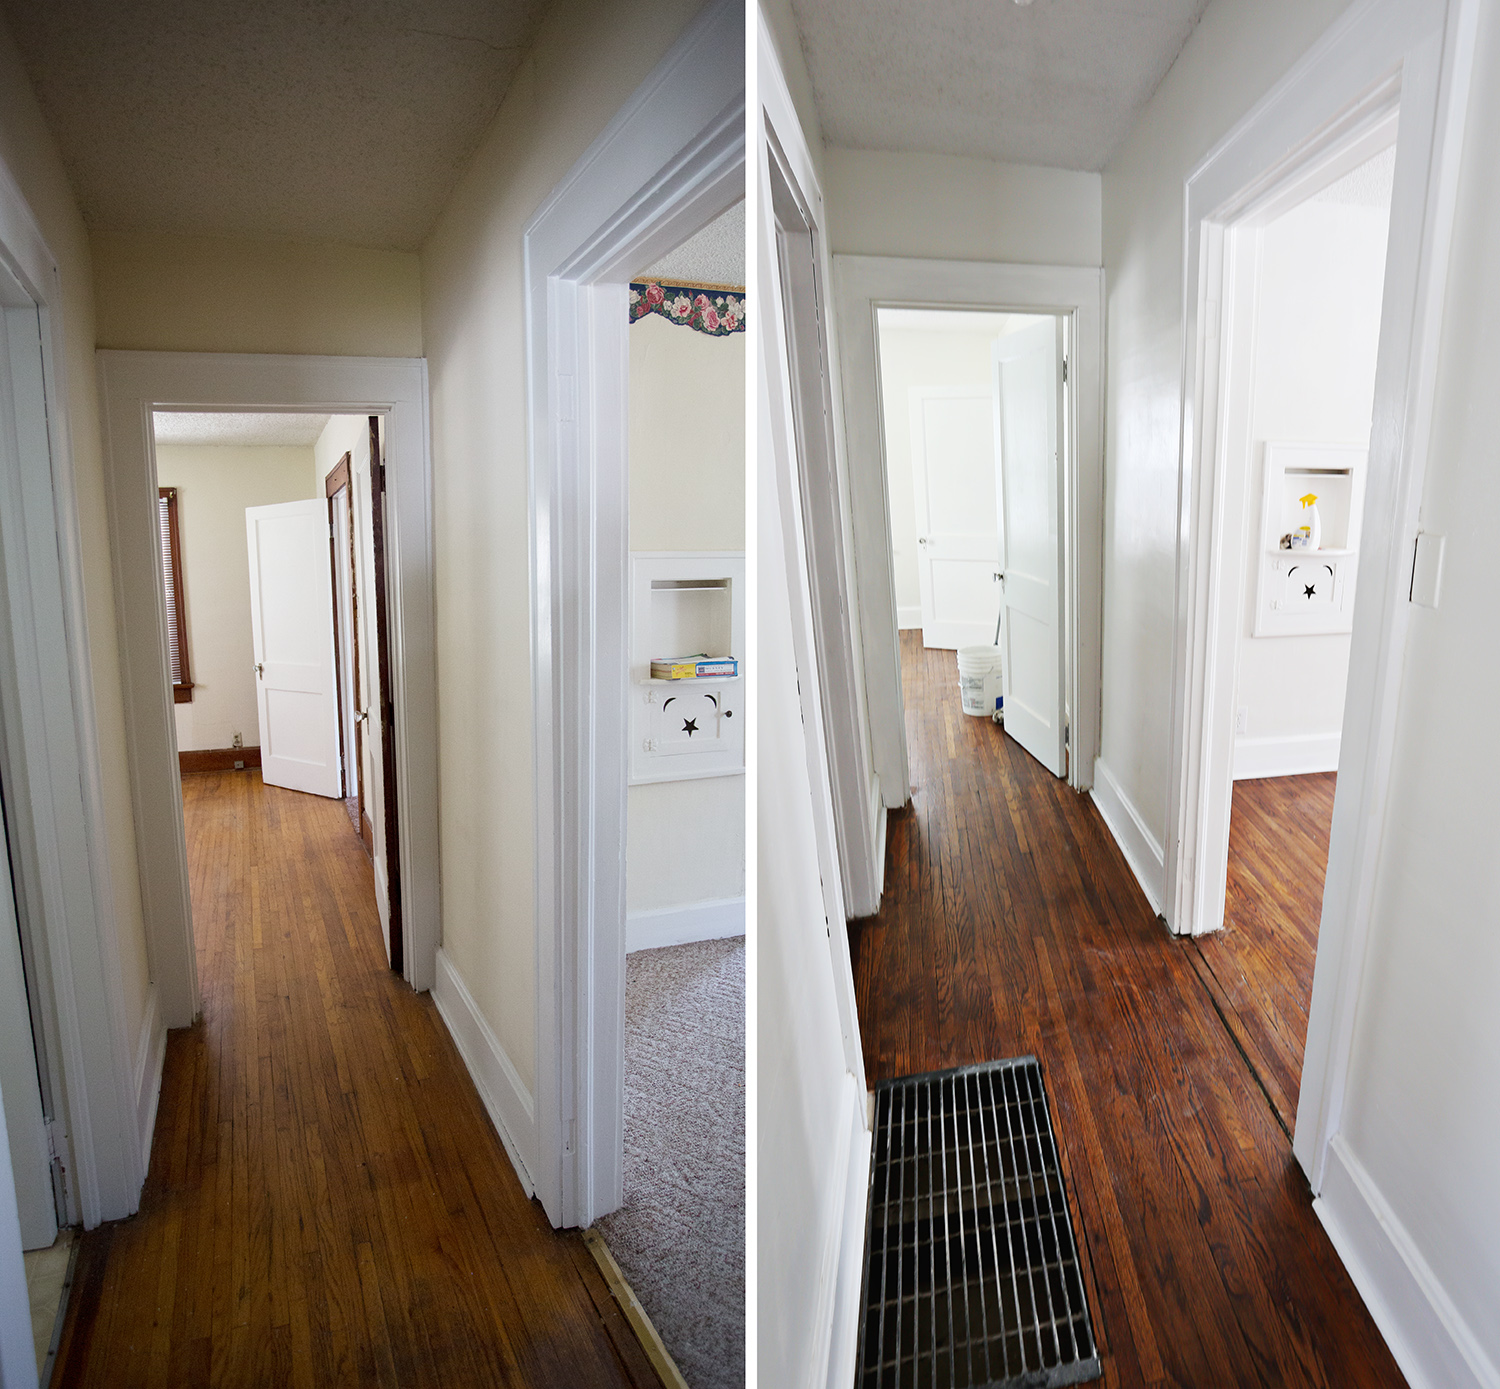 superb how to refinish old hardwood floors Part - 6: superb how to refinish old hardwood floors photo gallery